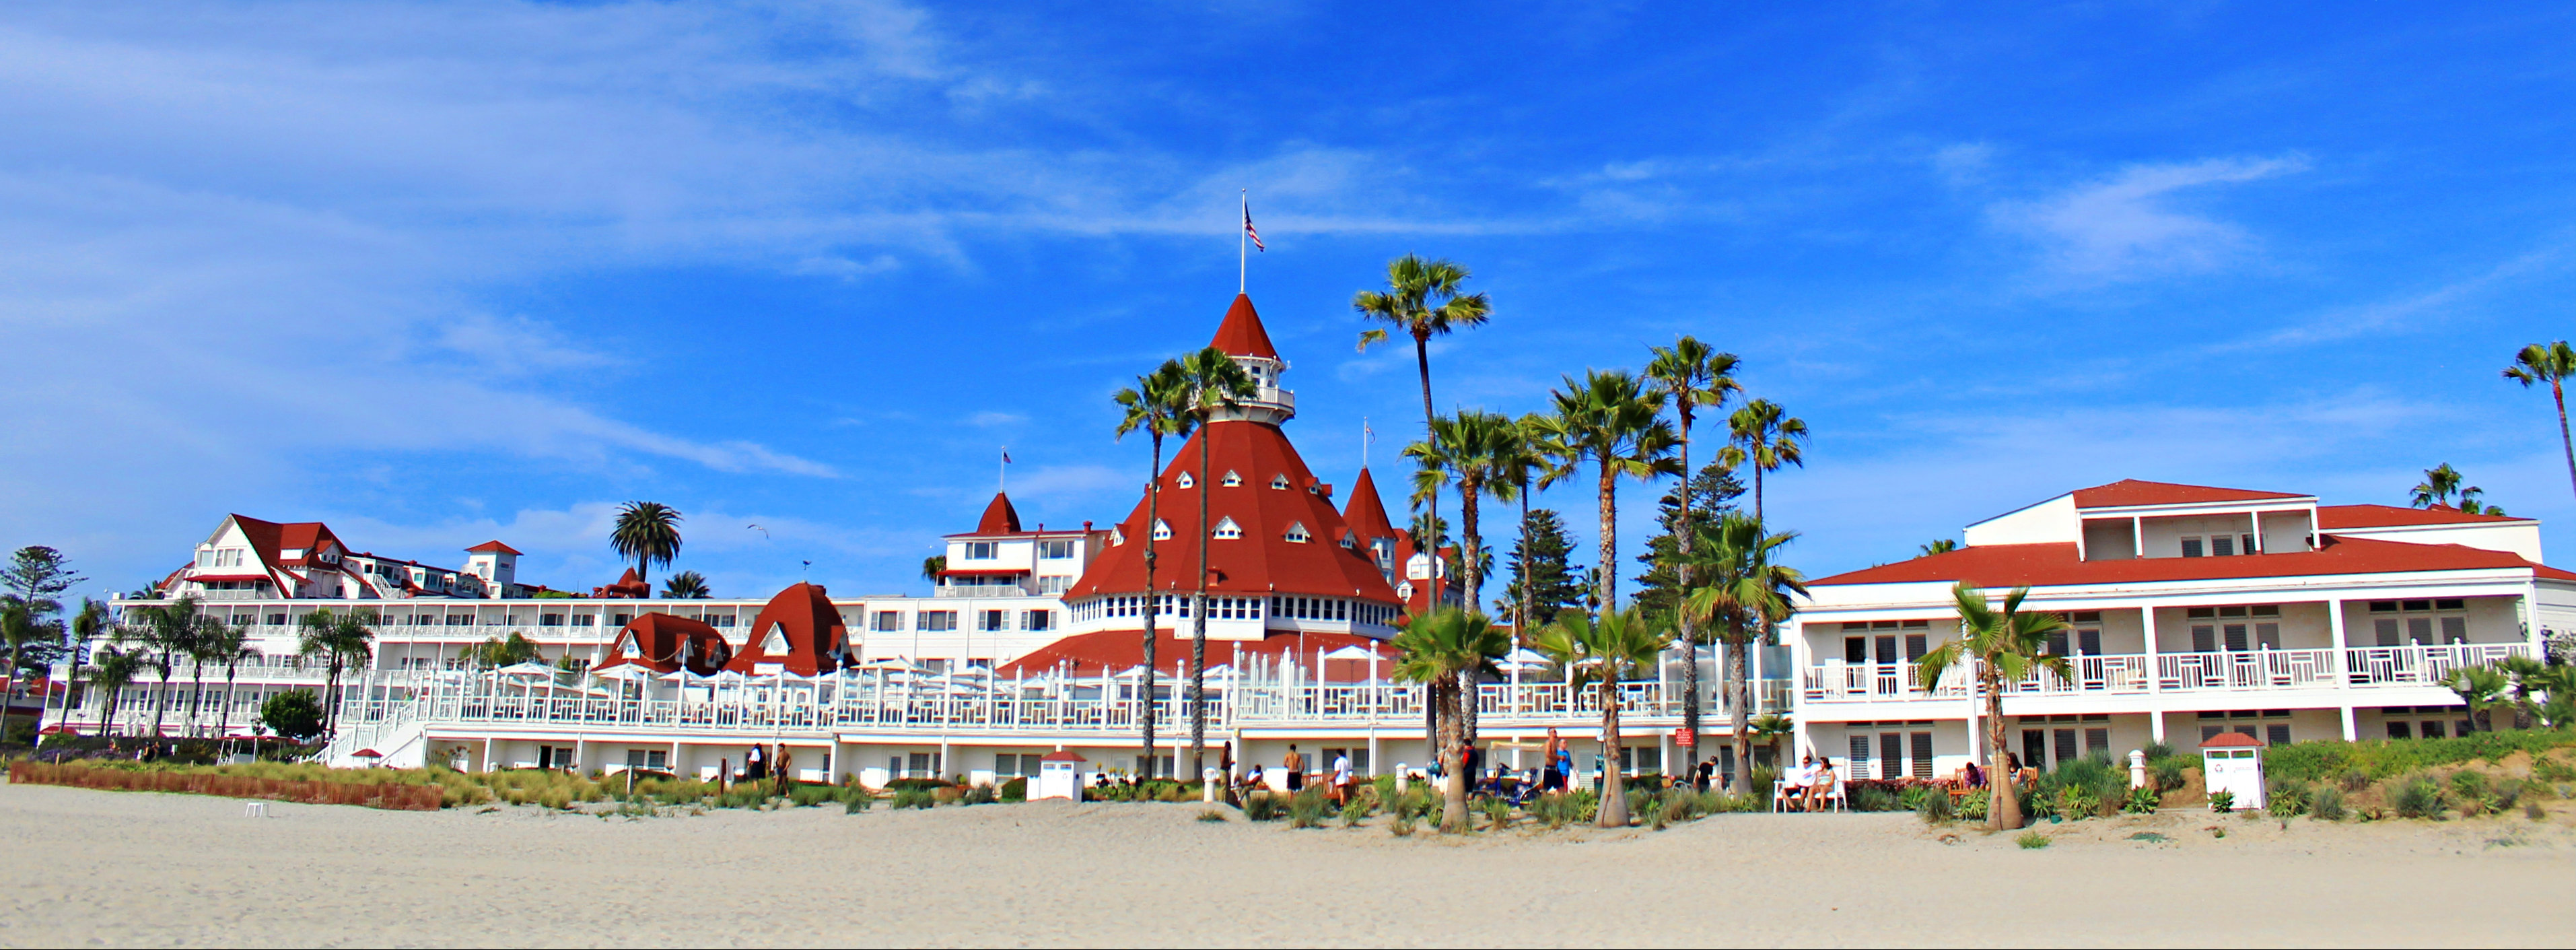 comme coco hotel del coronado beach - Travel Diaries: San Diego